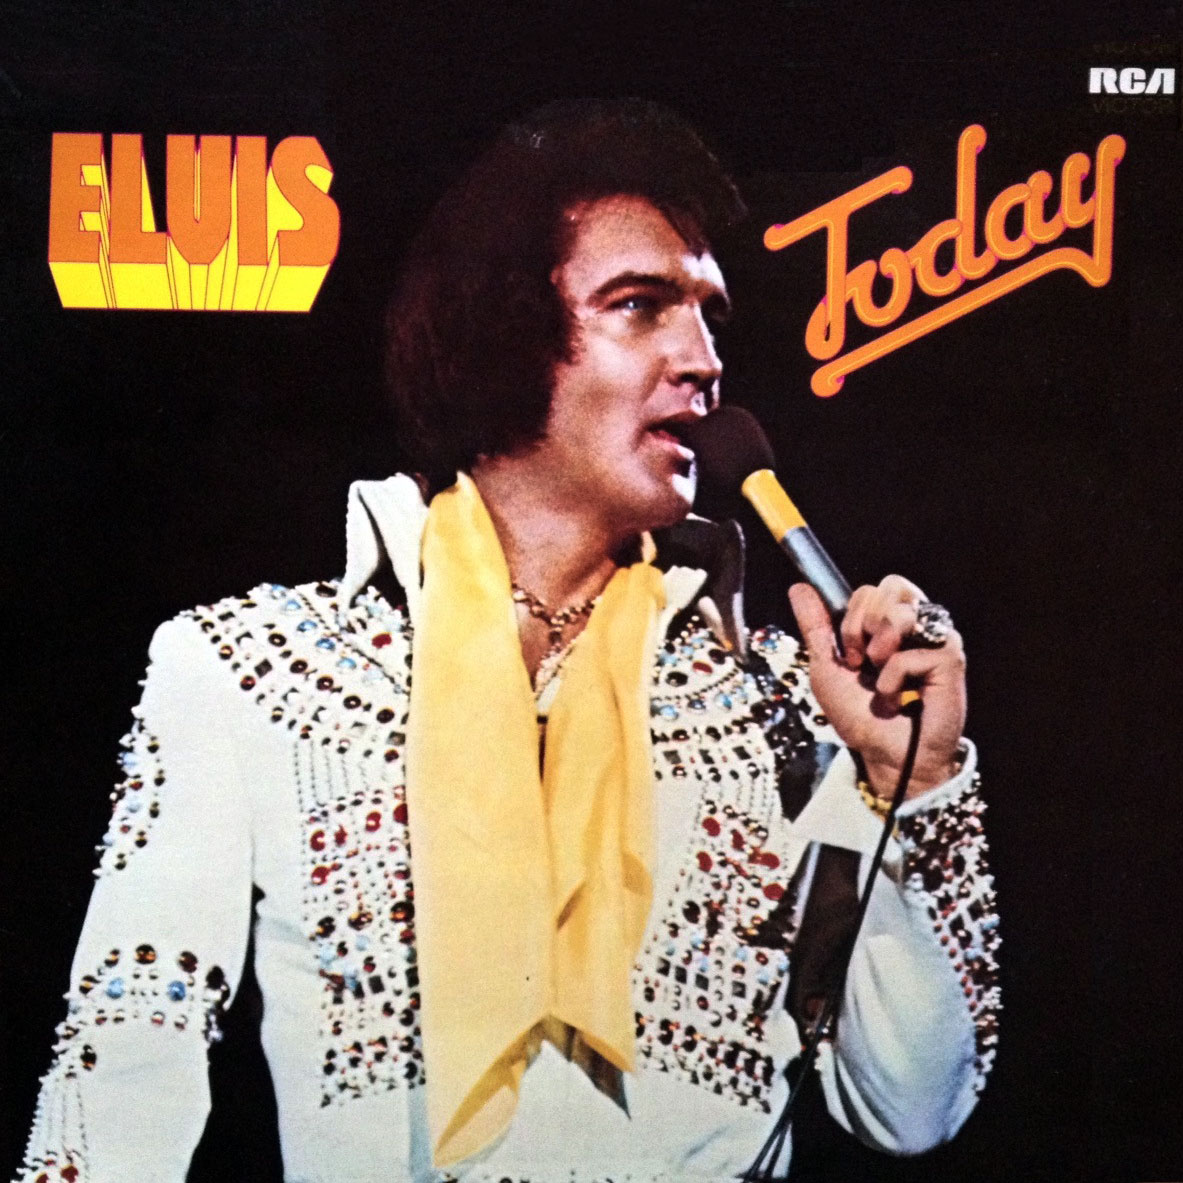 Elvis-Today